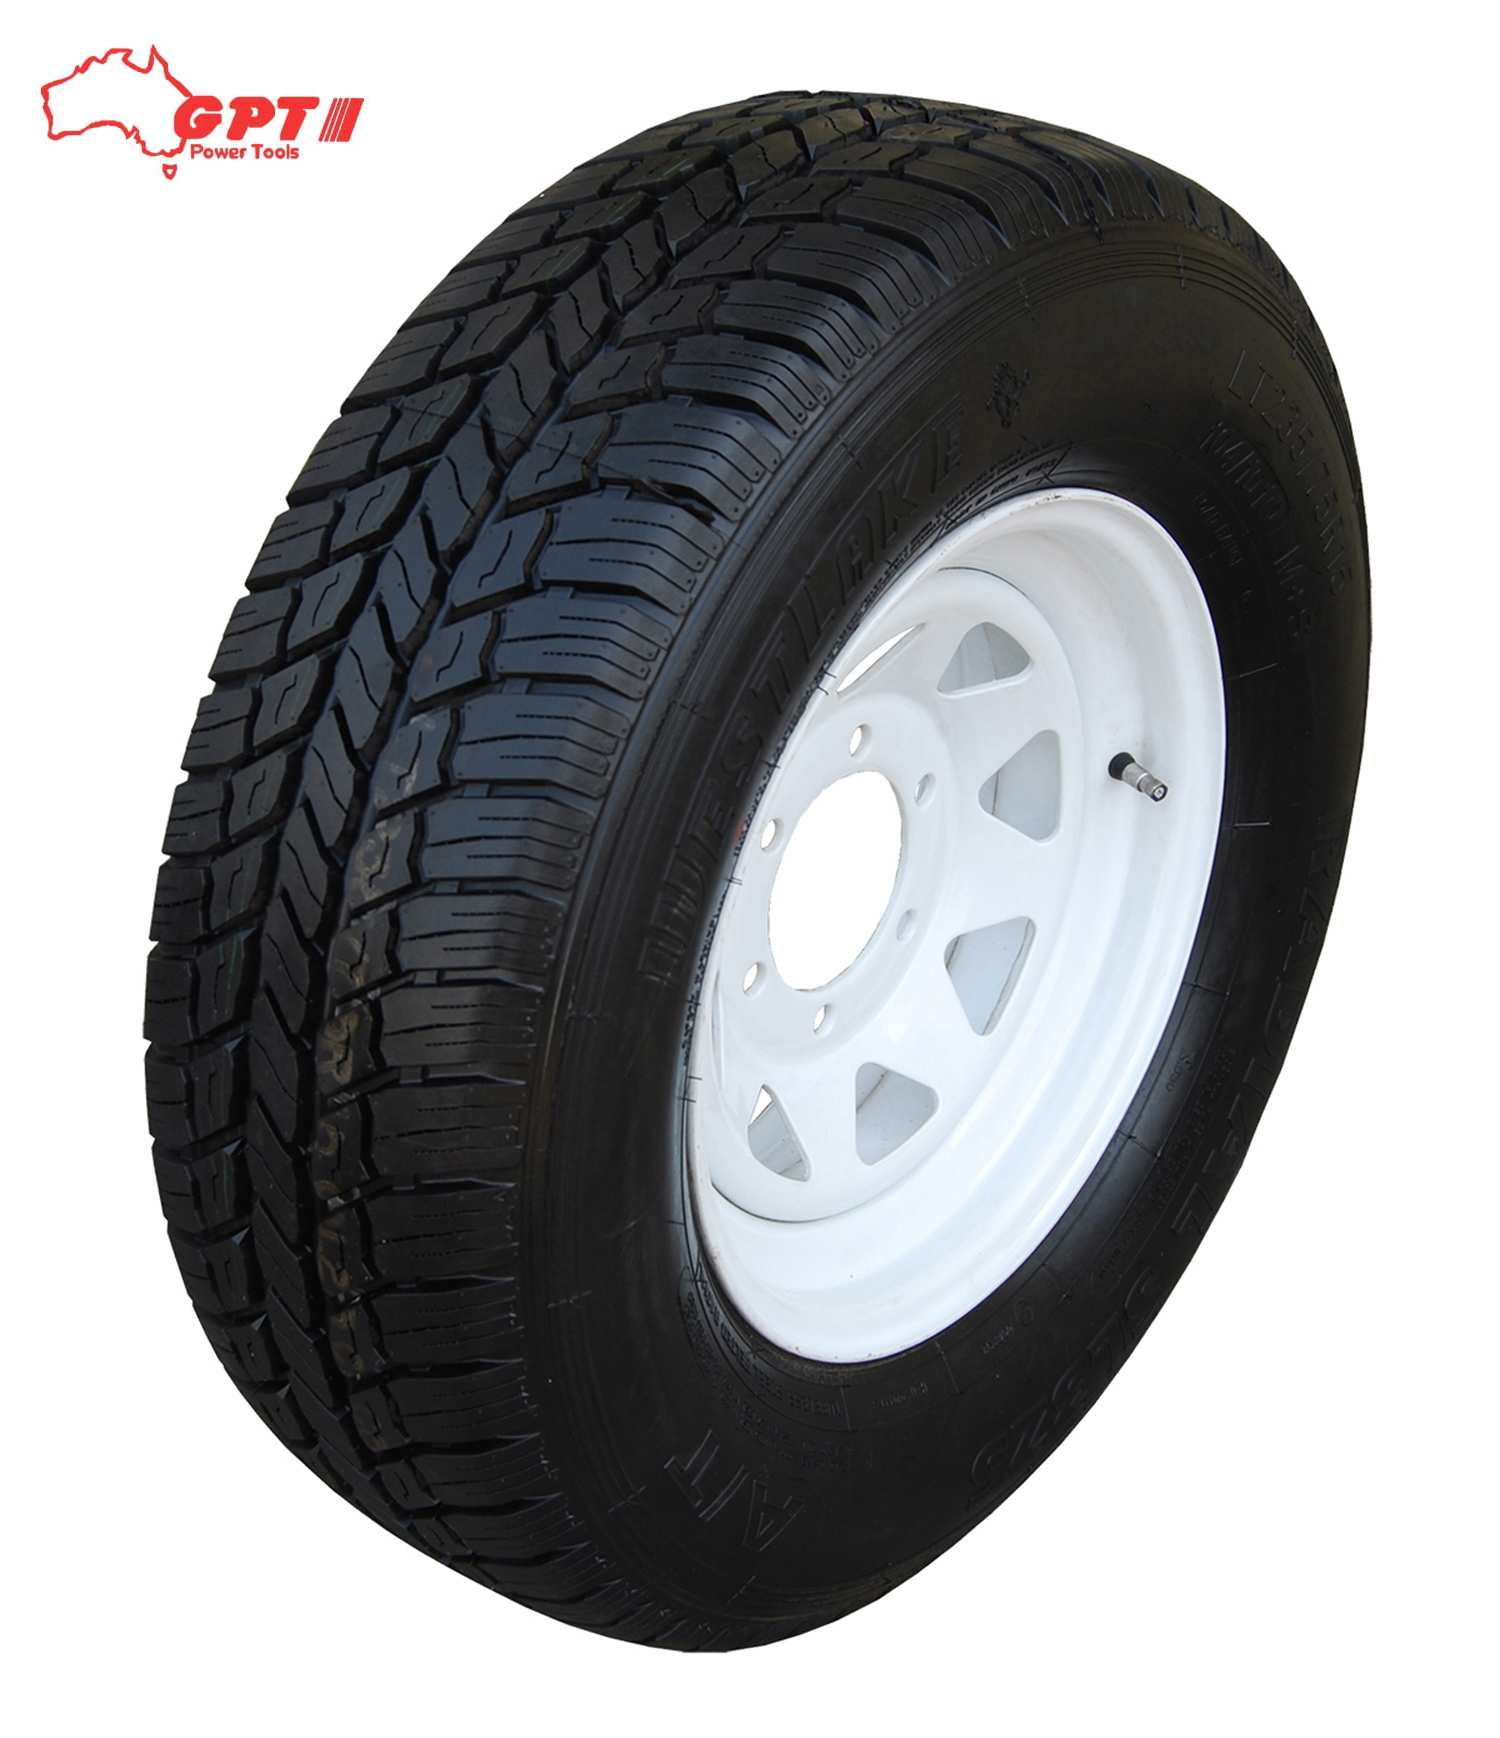 13 Inch Wheel For 6x4 Trailer